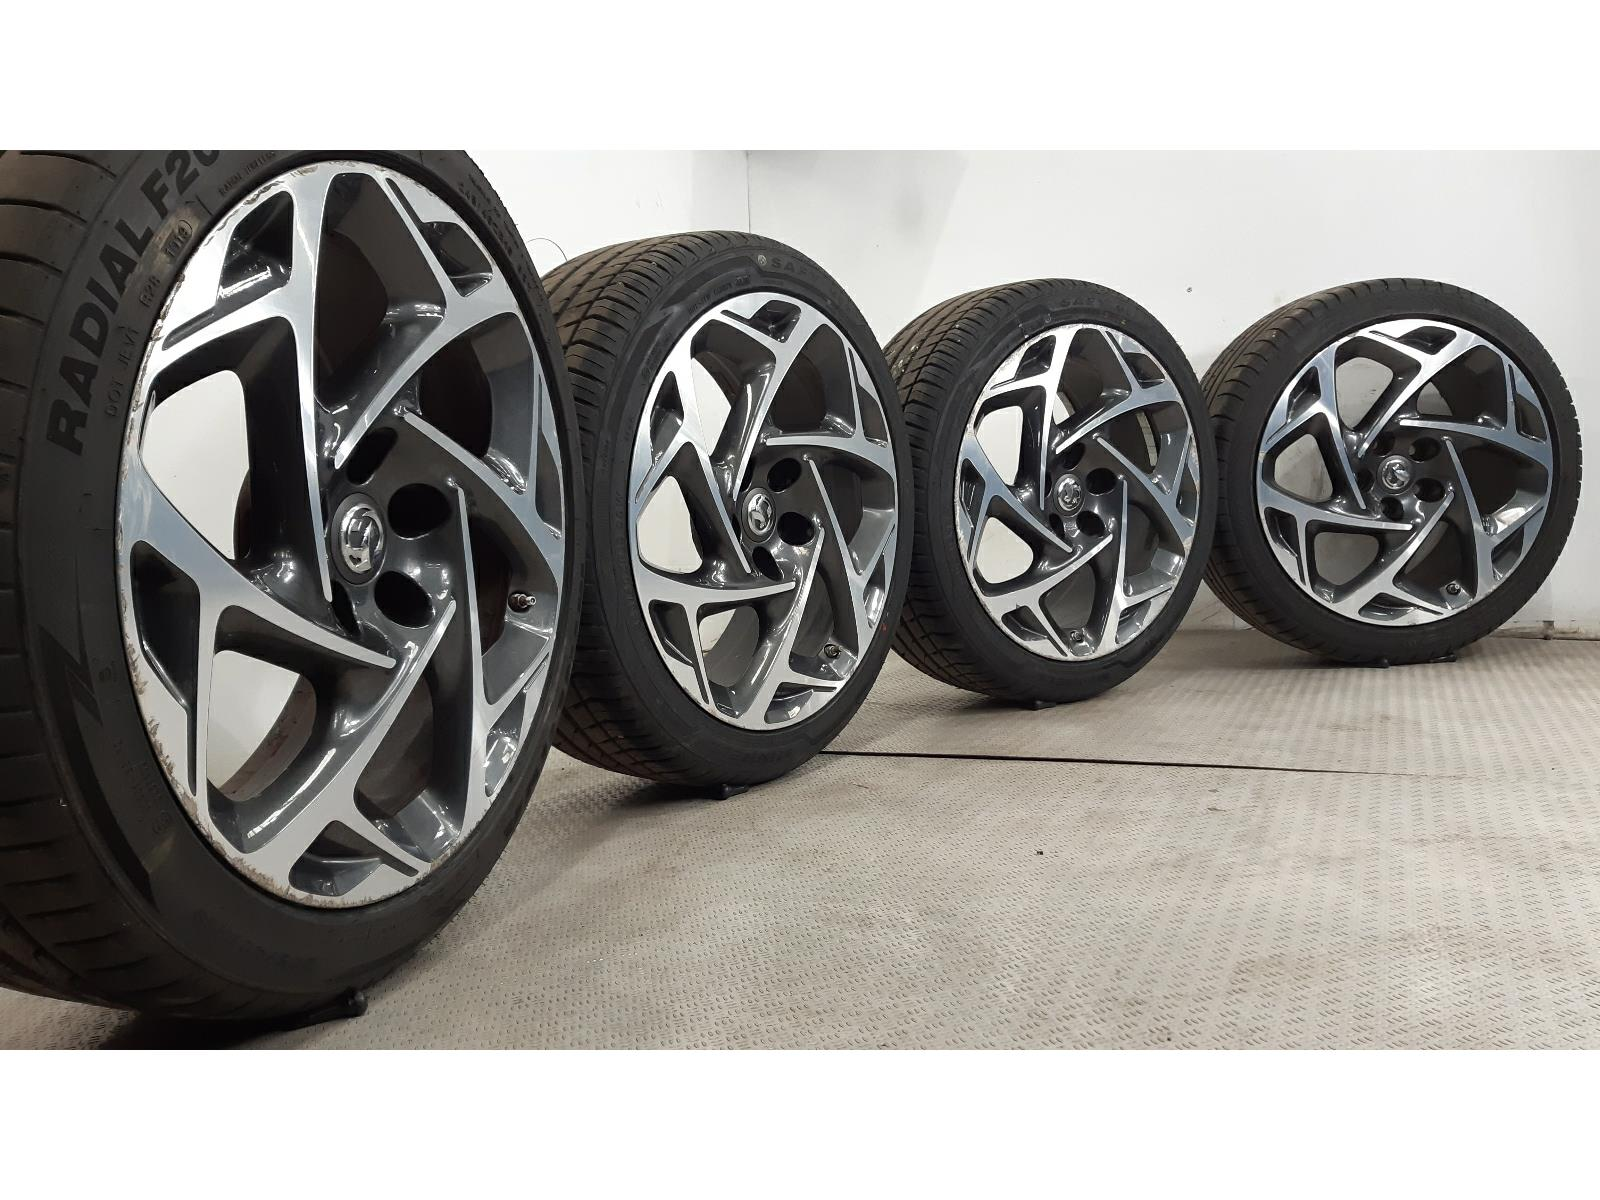 Set Of Genuine 19 Inch VAUXHALL INSIGNIA Alloy Wheels & Tyres 5x120 39019114